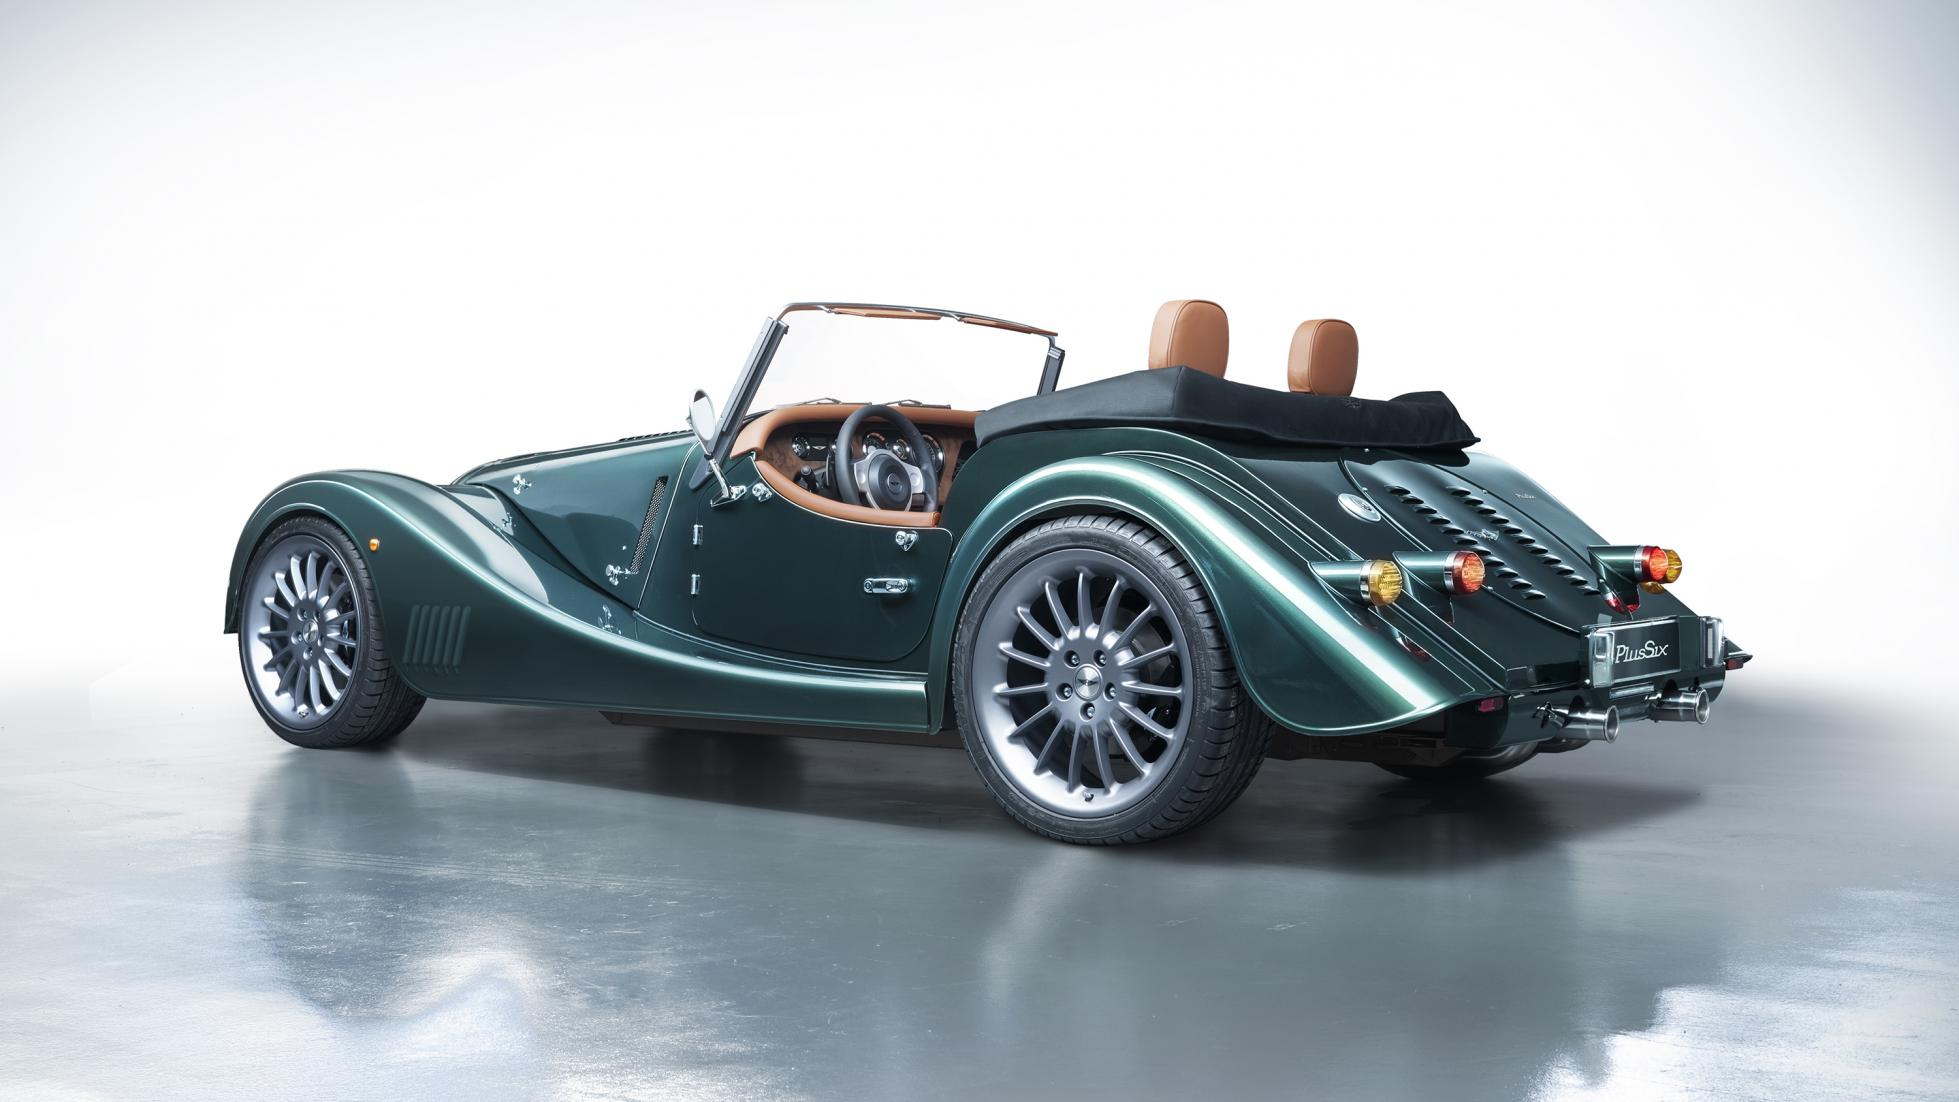 Green Morgan Plus Six rear 3/4